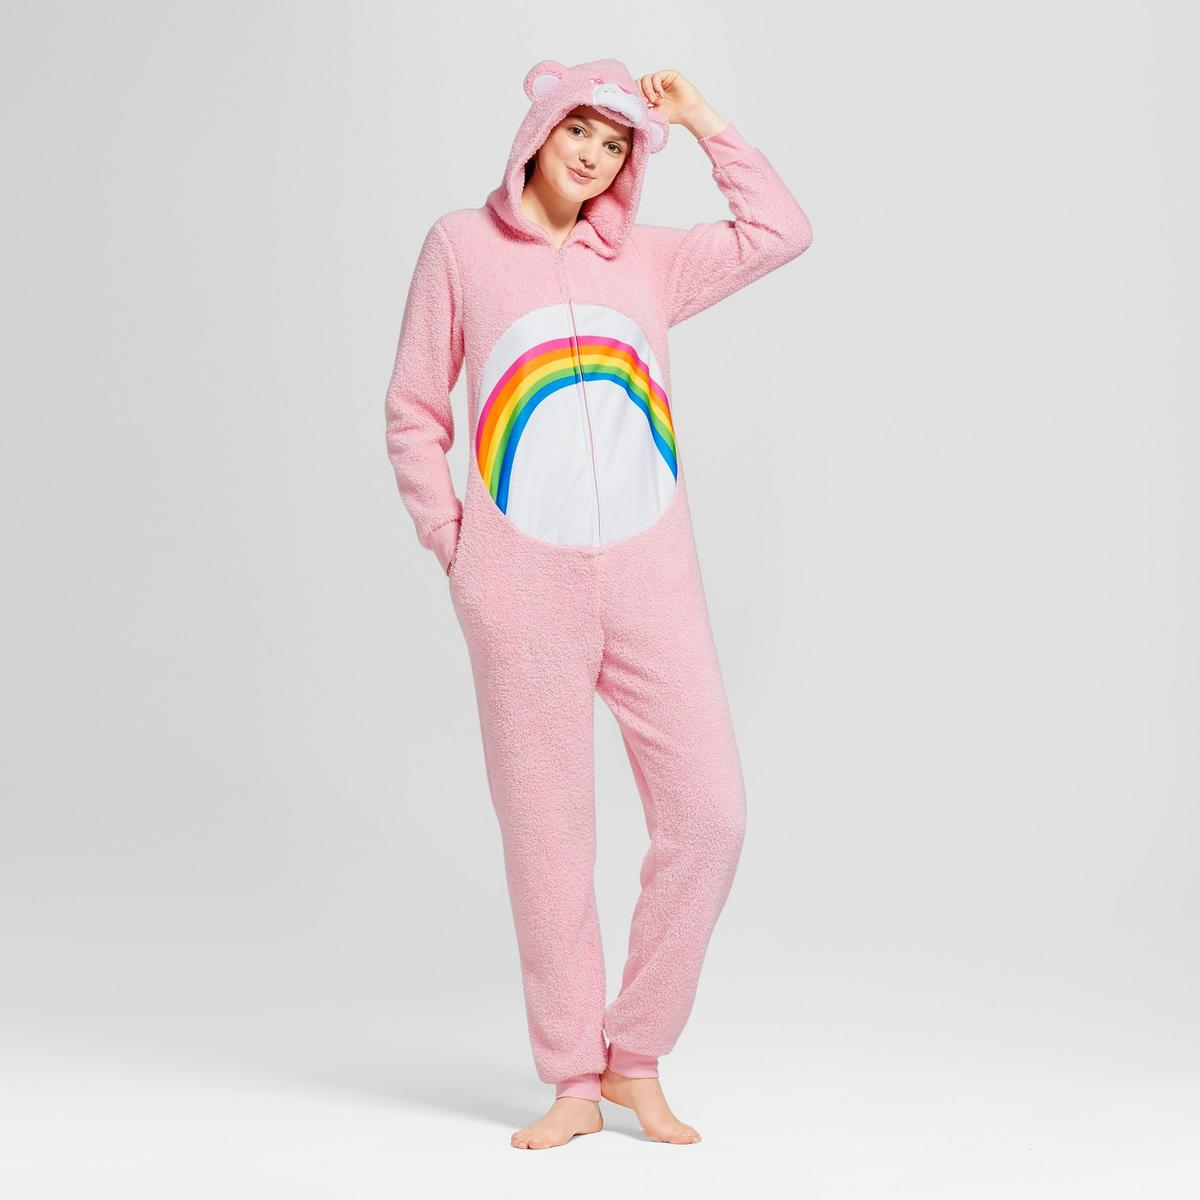 Care Bears 35th anniversary, American Greetings is launching a line of the onesies._still